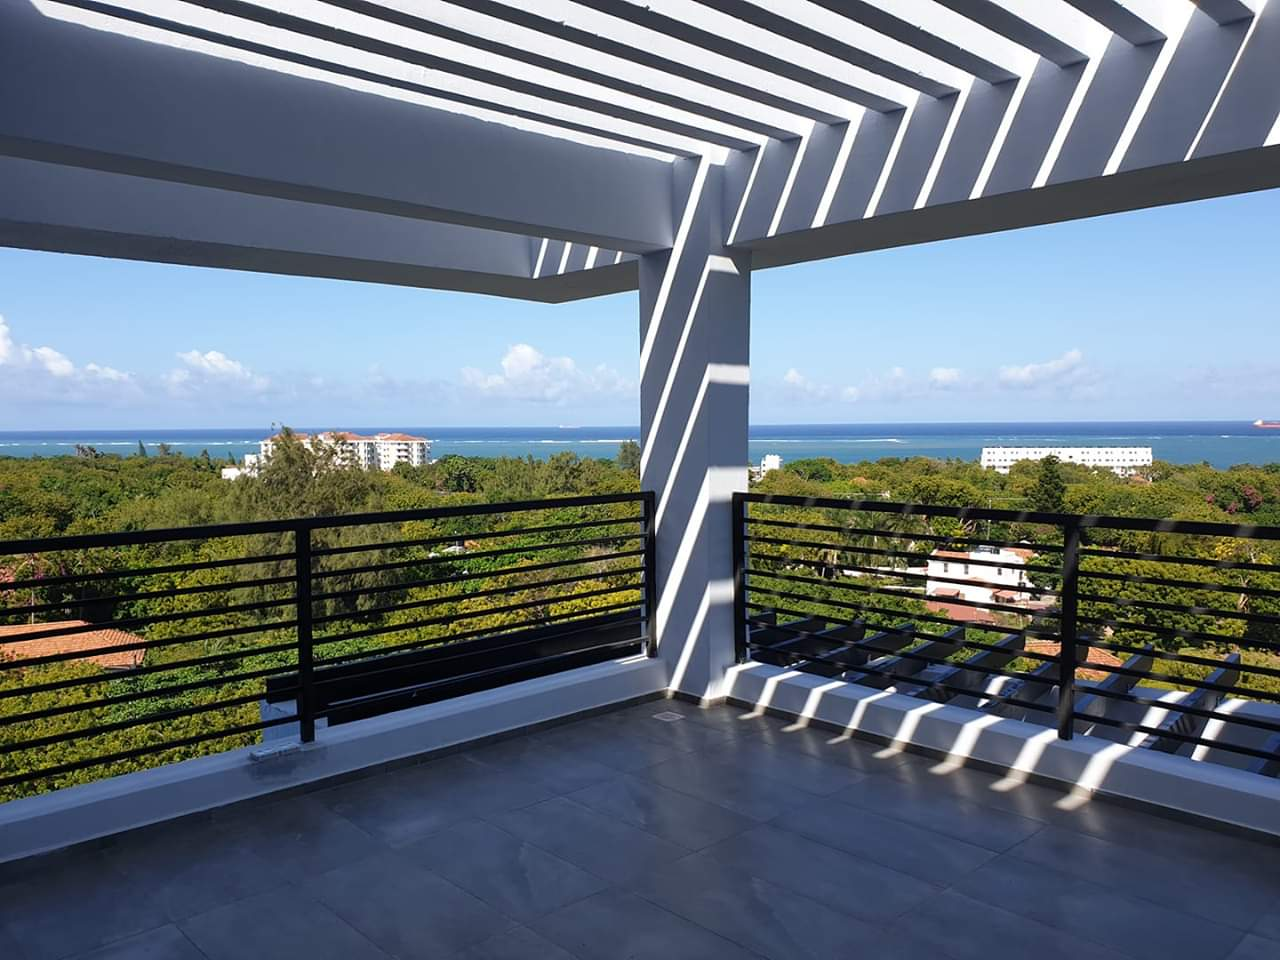 4 Bedroom Duplex Penthouse Available for Rent in Nyali